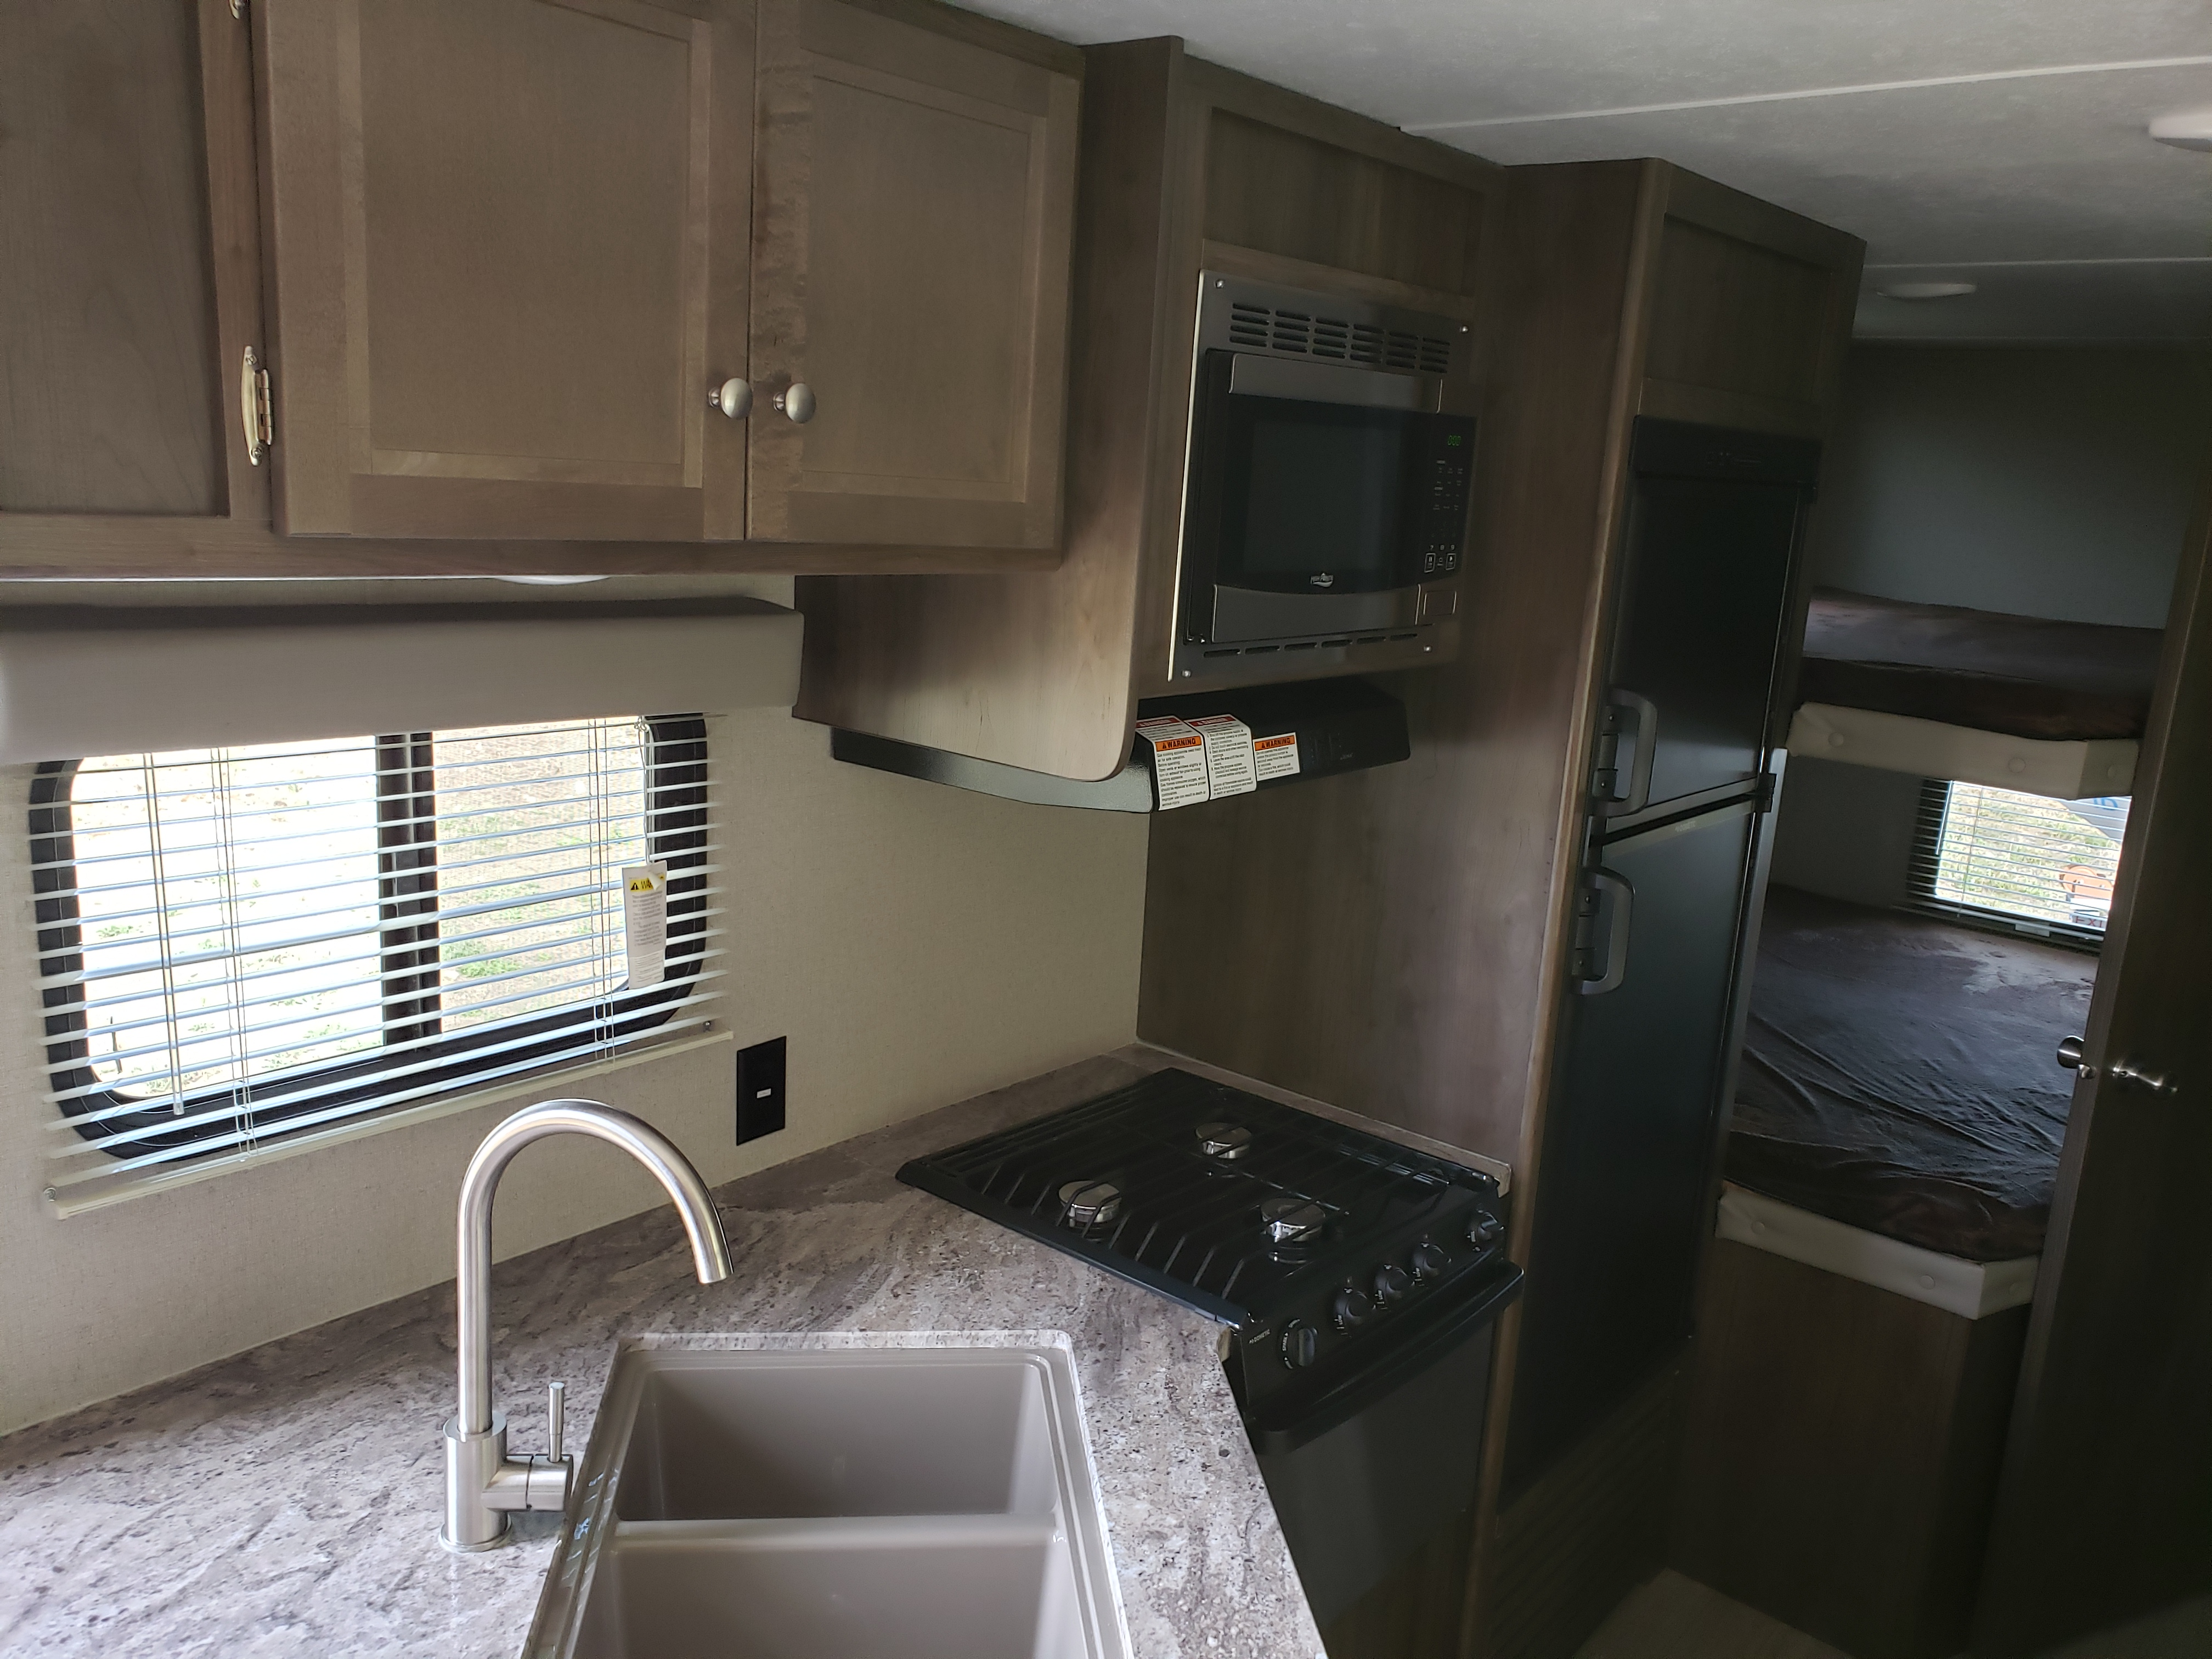 Rv has a nice kitchen with a sink, stove, range, microwave and fridge inside.. Coleman Lantern 2019